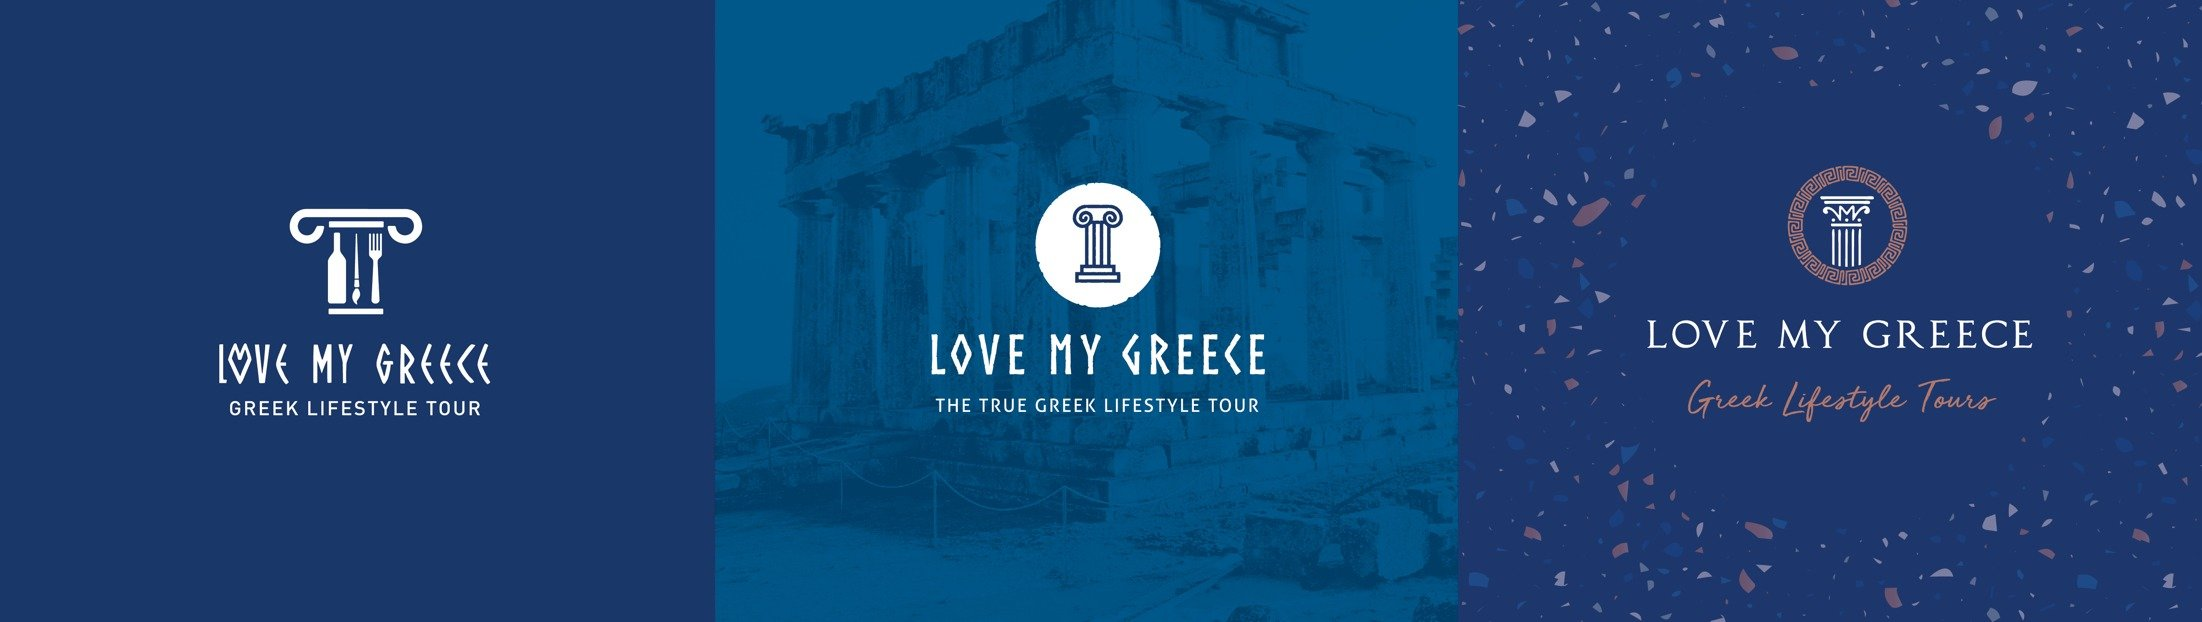 Initial Logo Concept - Love My Greece